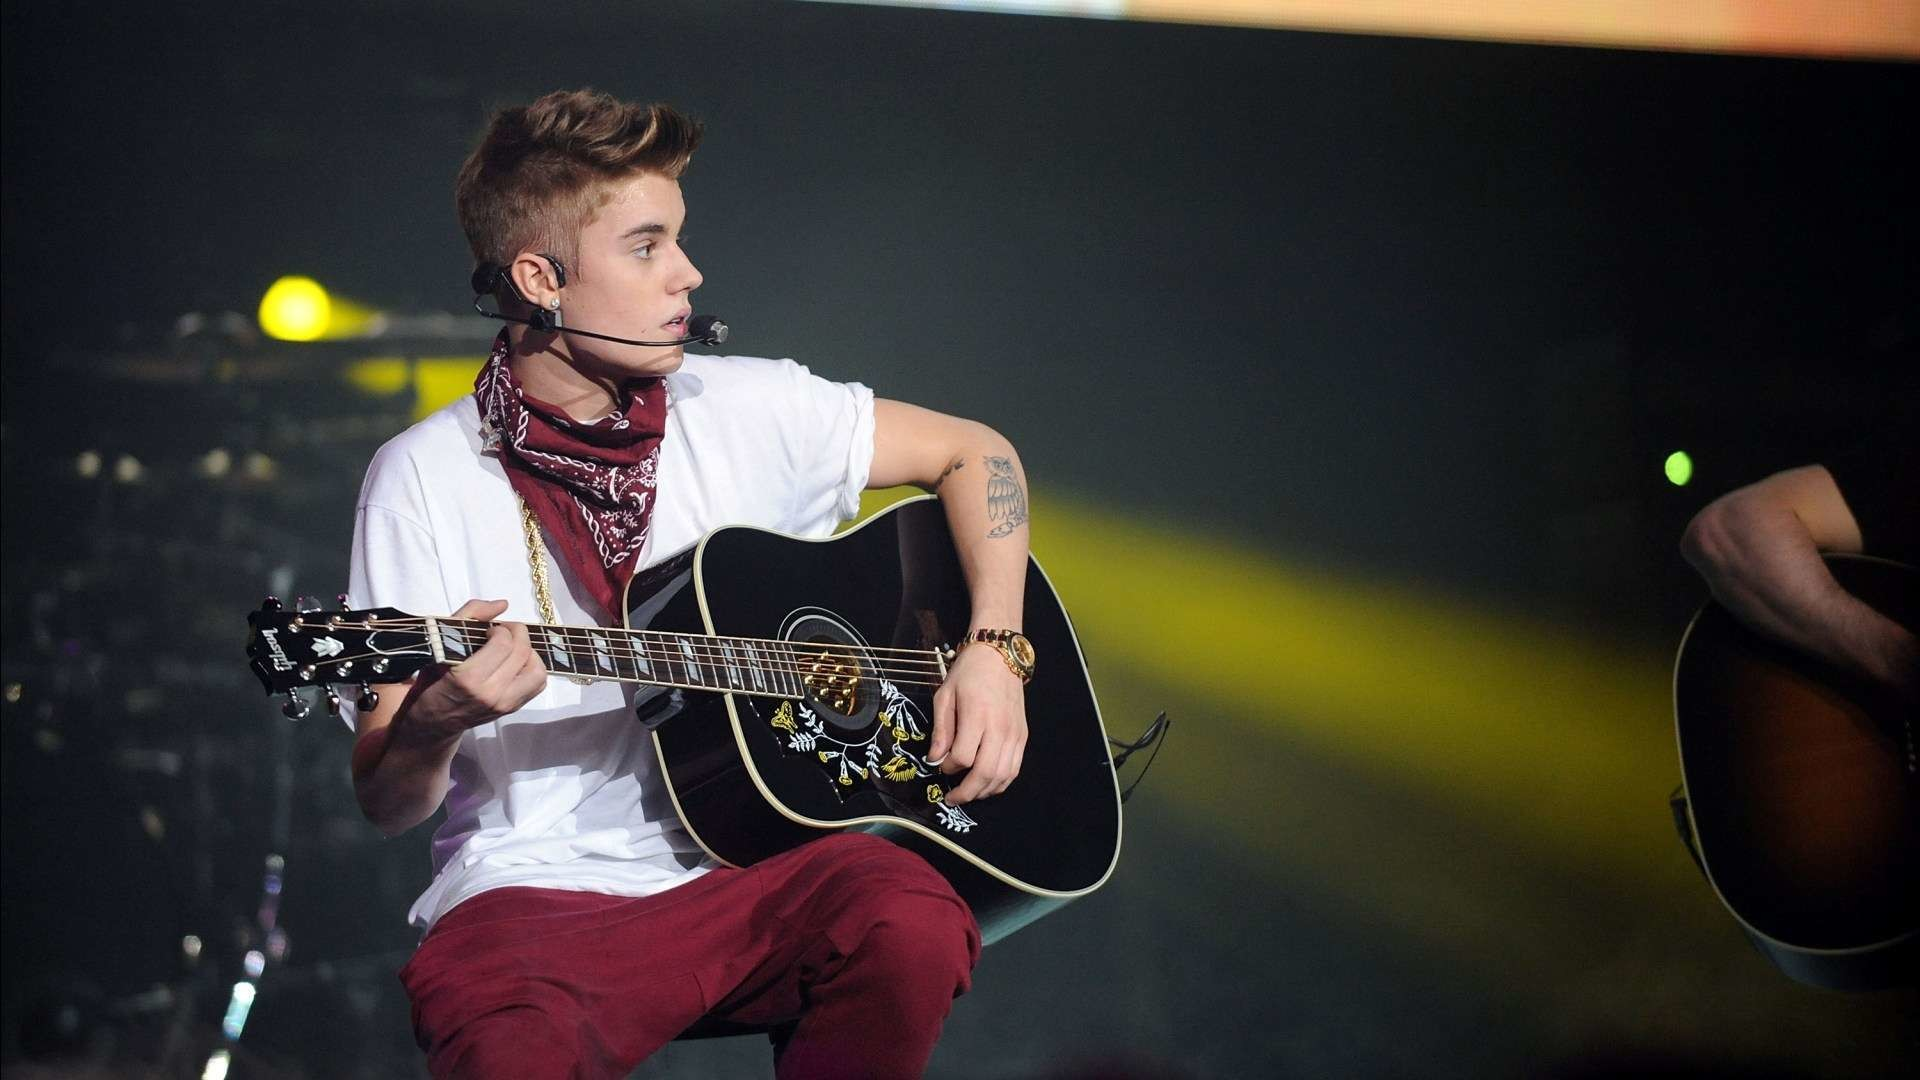 justin bieber hd wallpaper 64 images